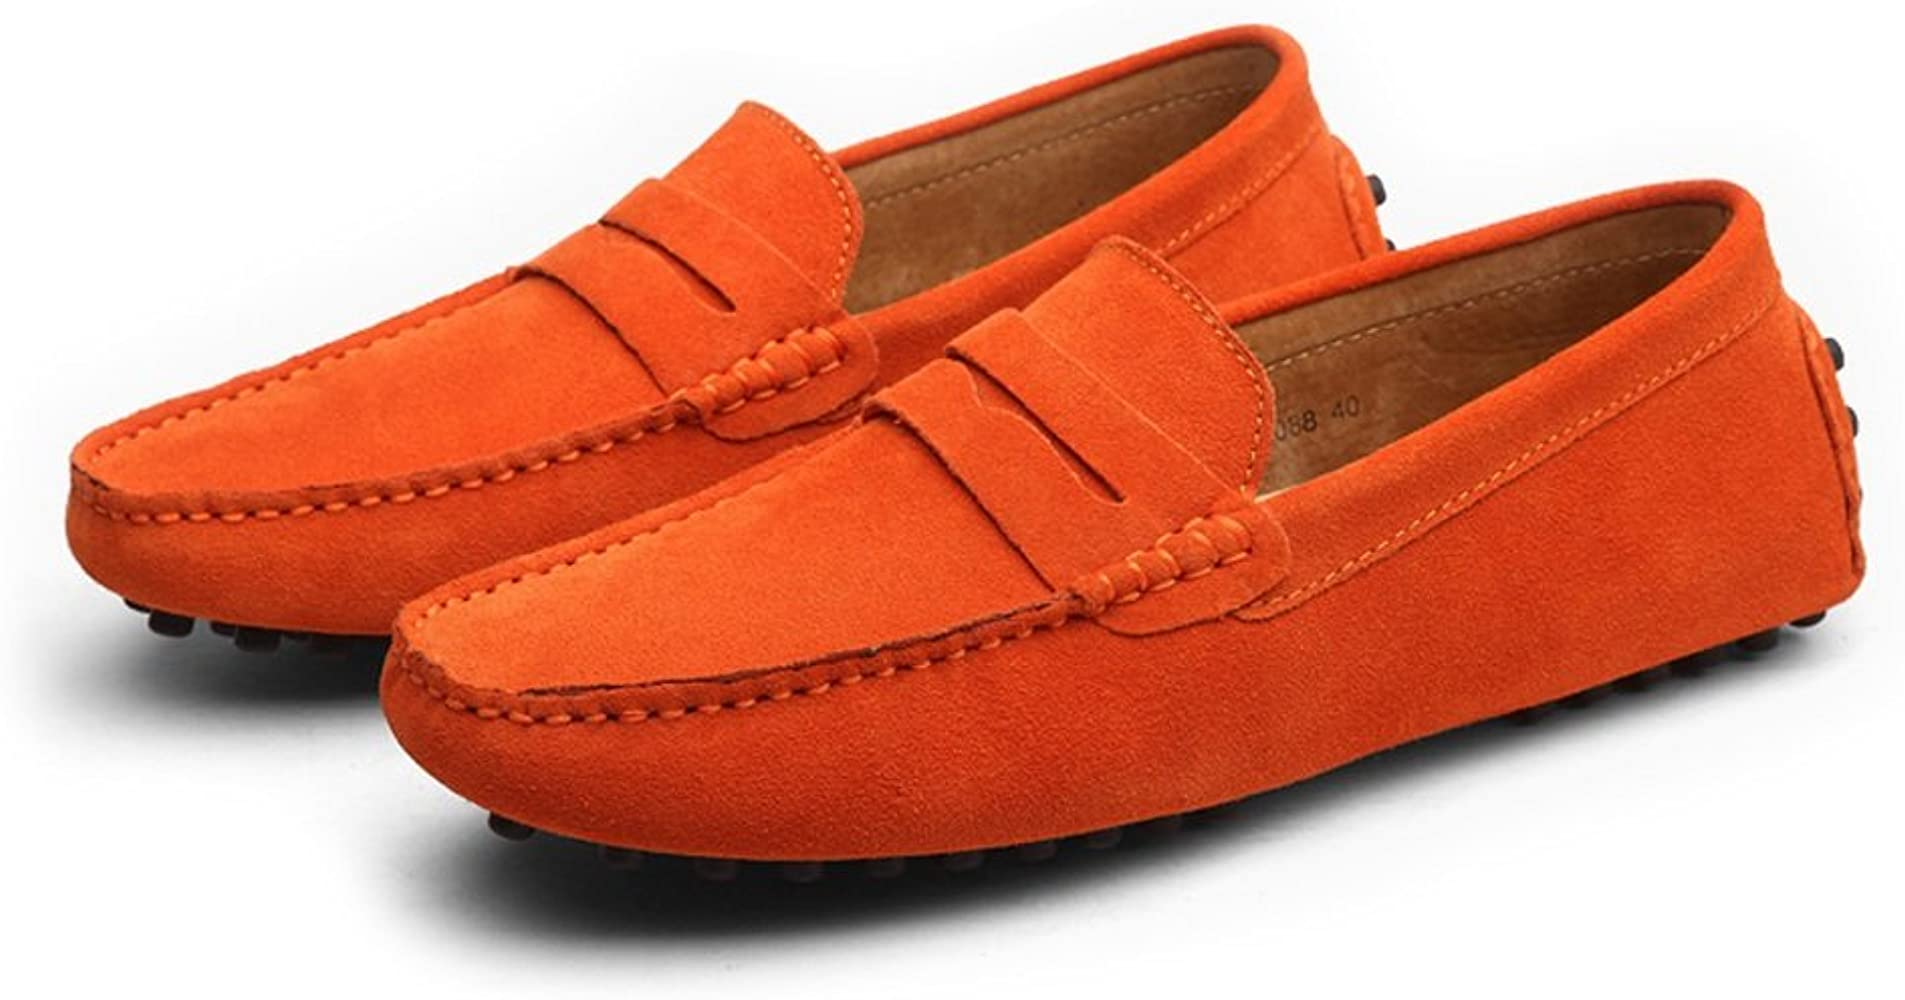 Z.L.F Mens Oxford Shoes Driving Penny Moccasins Genuine Leather Classic Shoes Soft Rubber Sole Boat Loafers